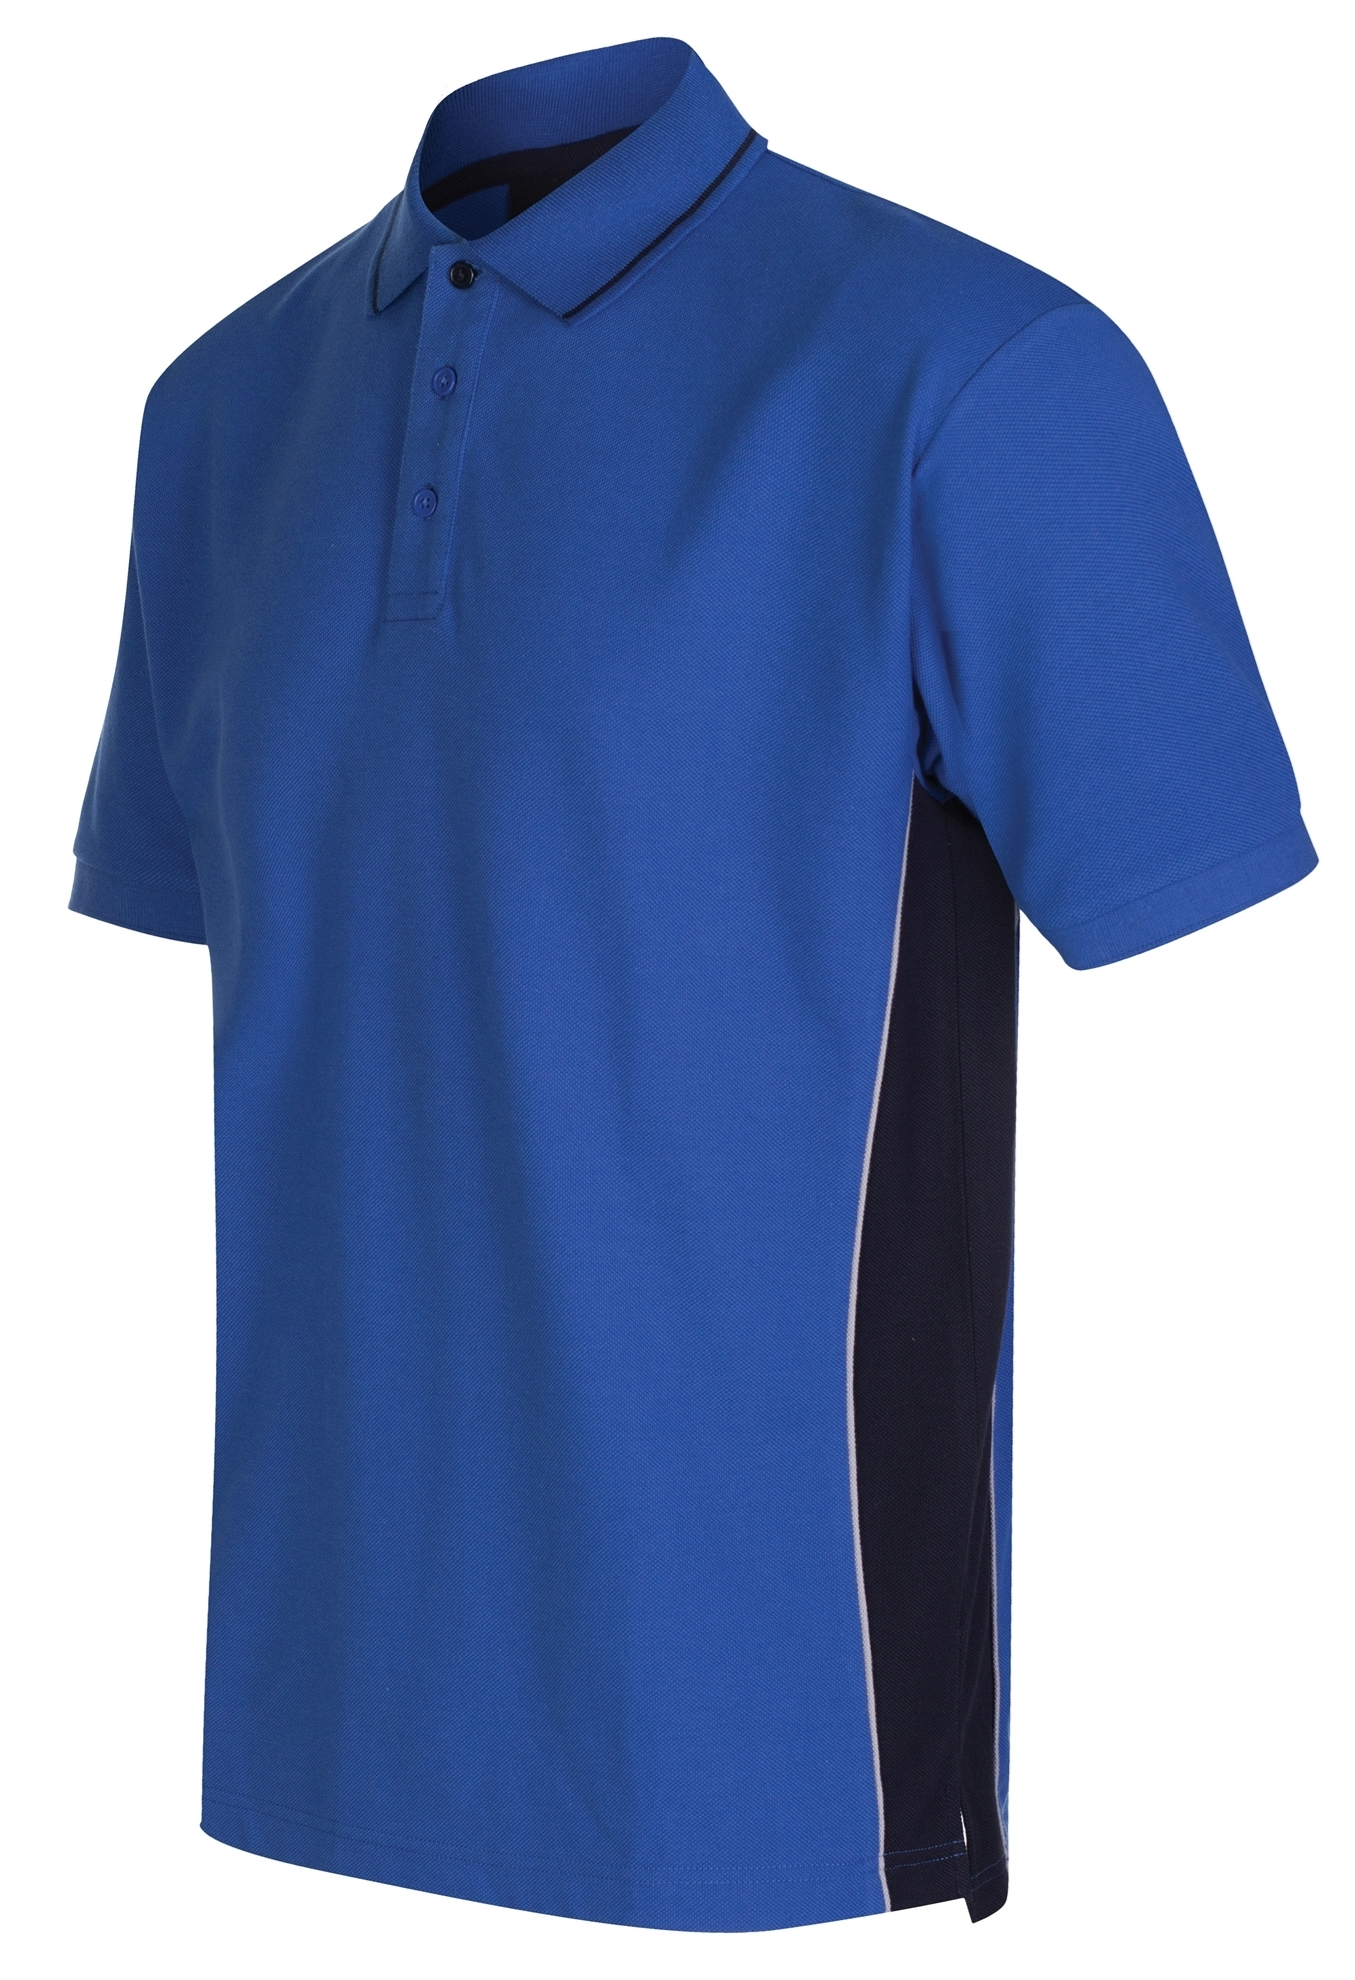 Picture of Gryzko Unisex Contrast Polo Shirt - Royal Blue/Navy